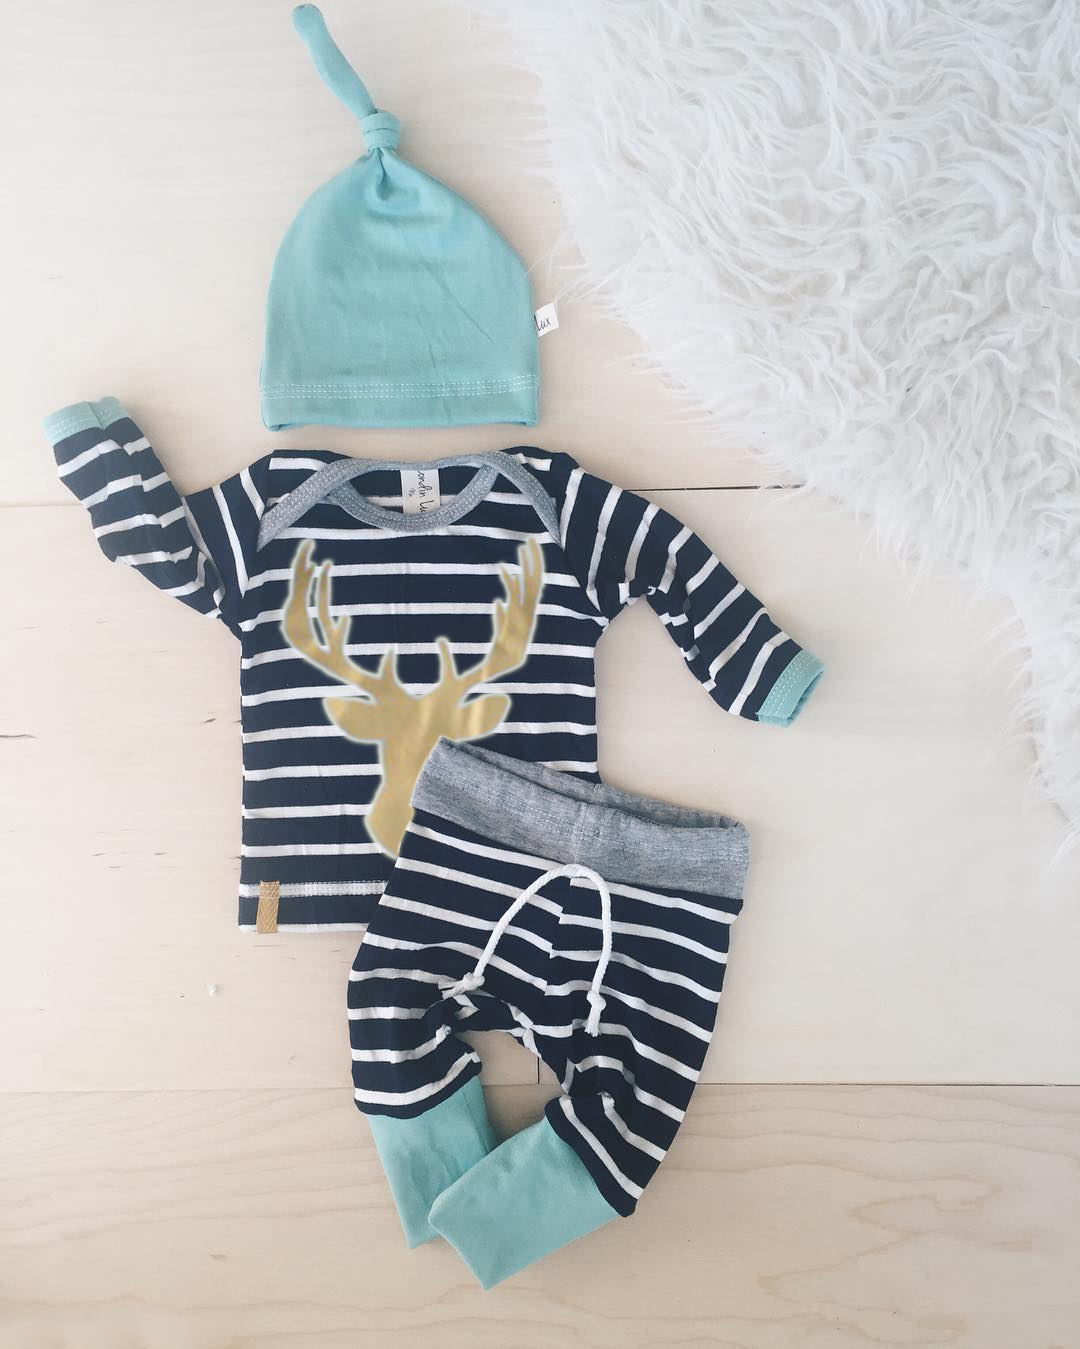 3pcs baby set!!Newborn Baby Boys Girls long sleeve striped deer T-shirt+ long striped pants +hat